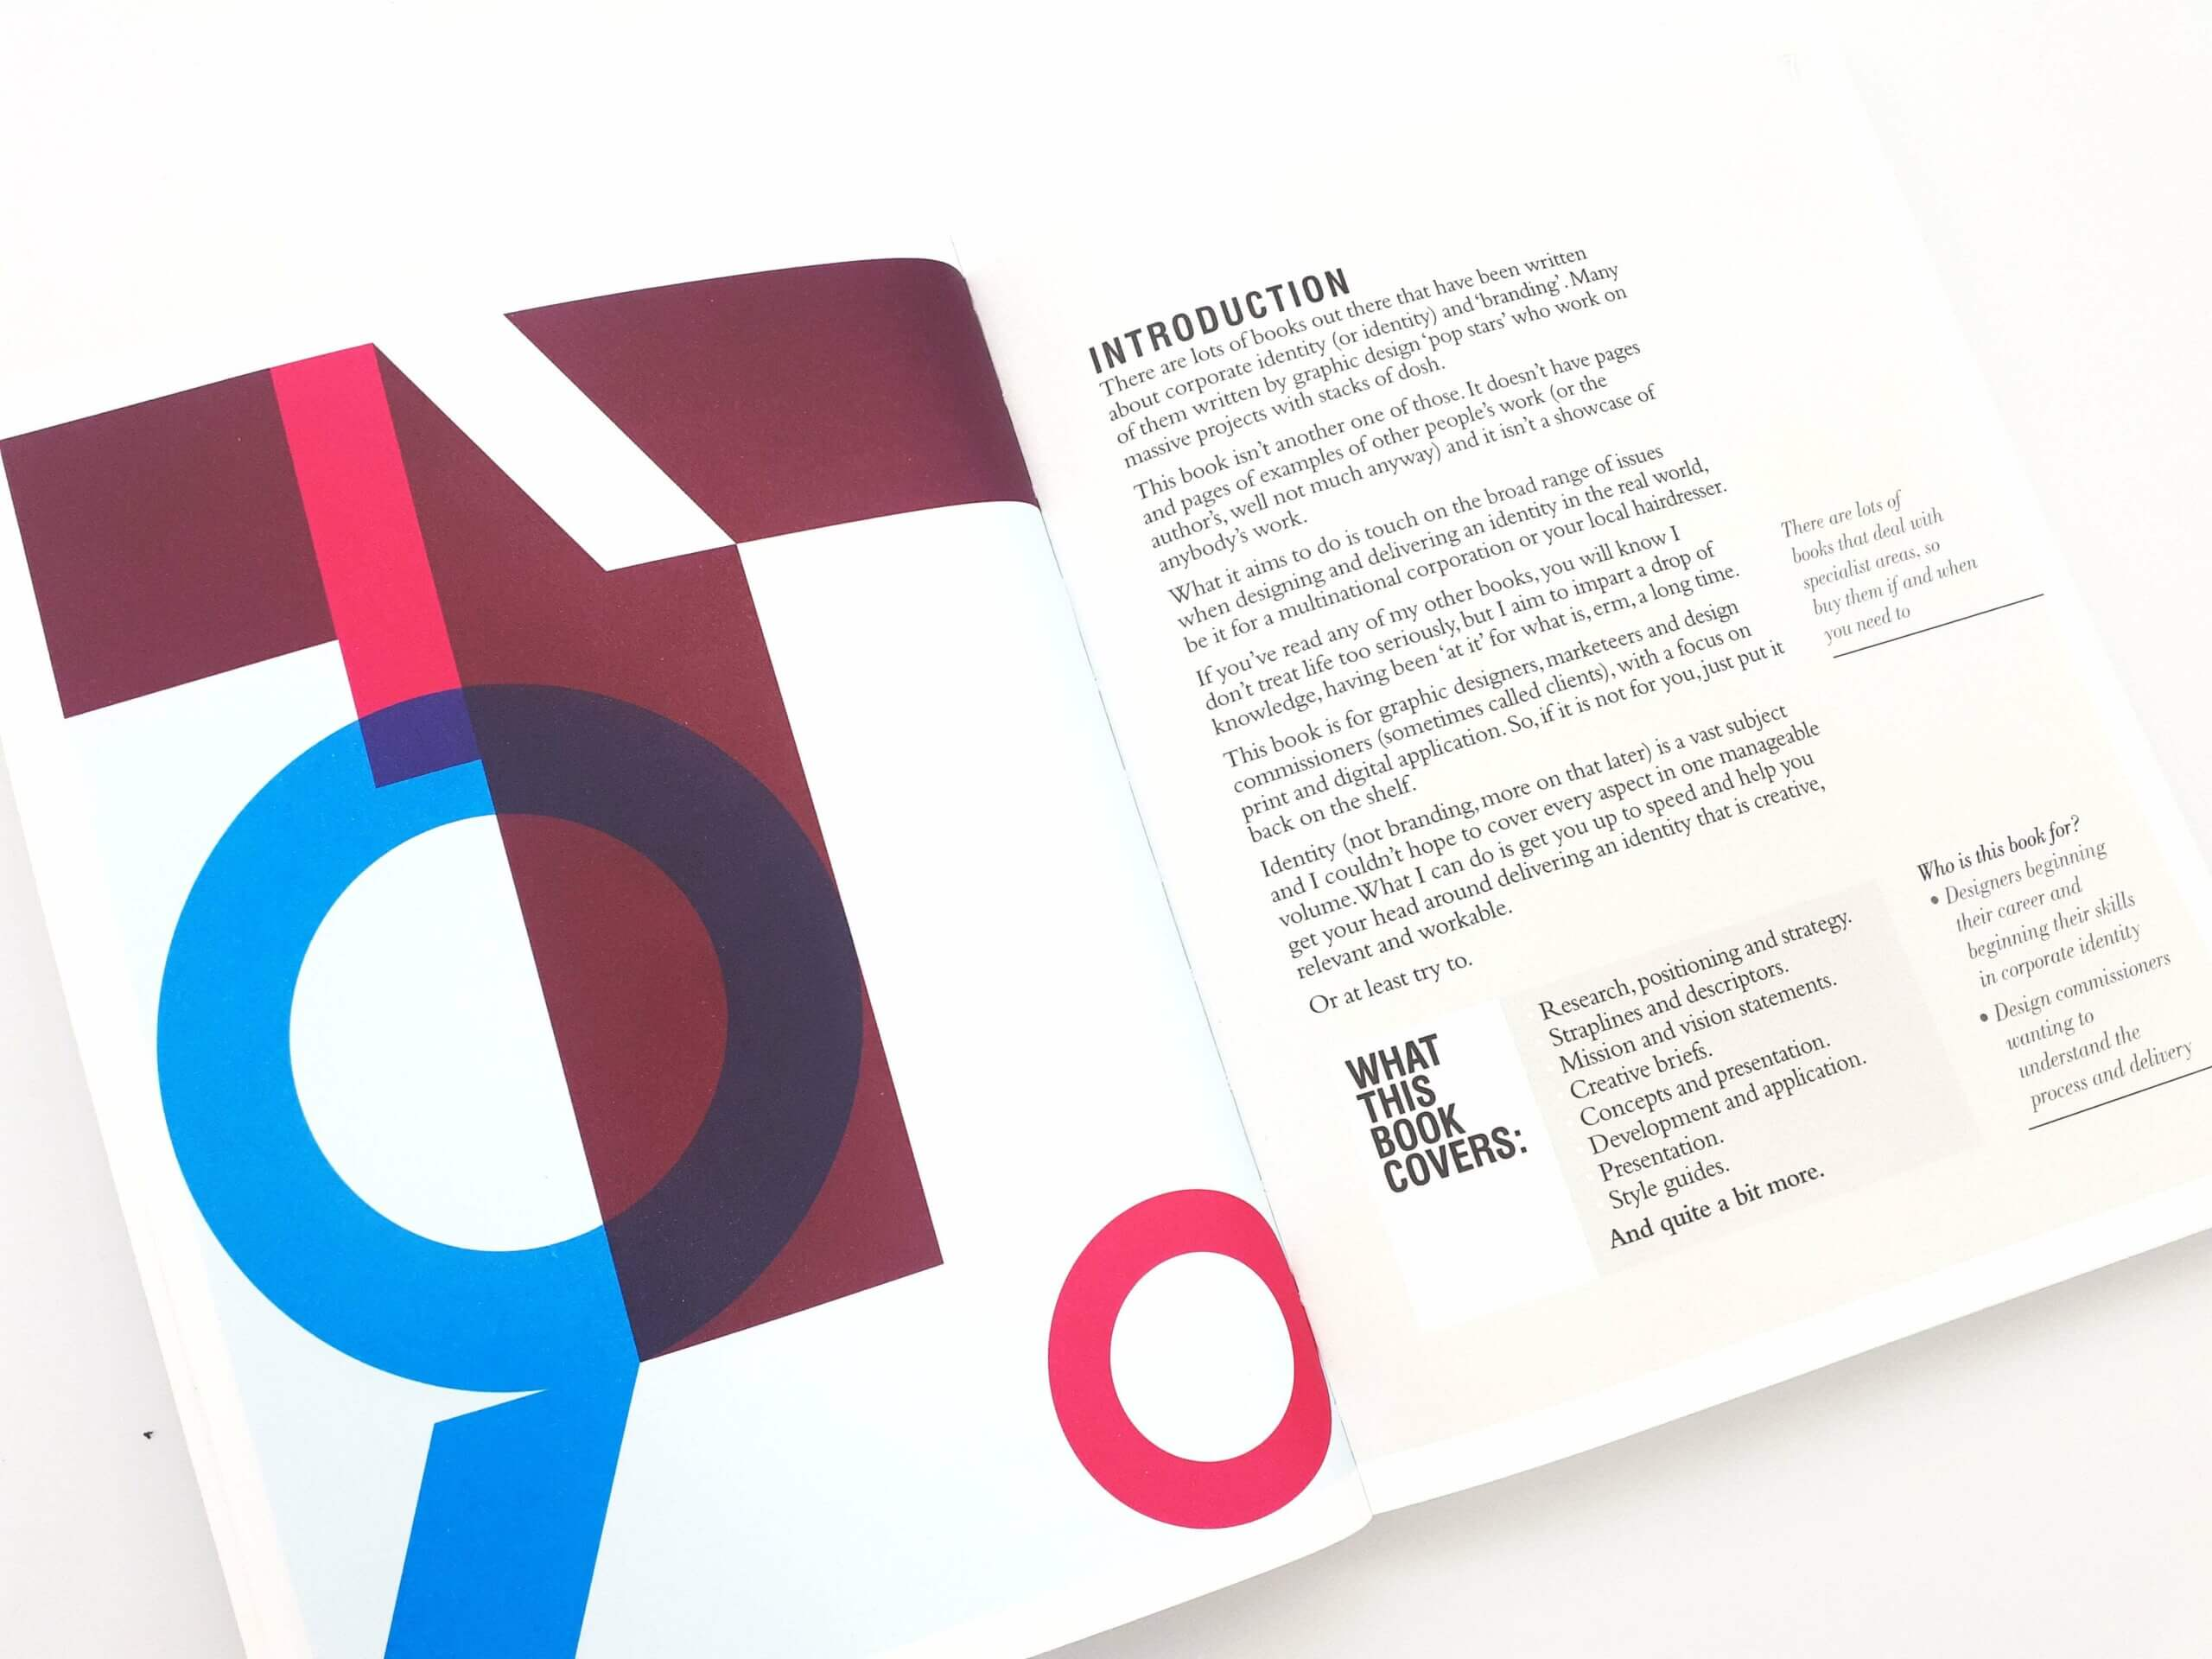 Know Your Onions - Corporate Identity By Drew de Soto - Book Review_4